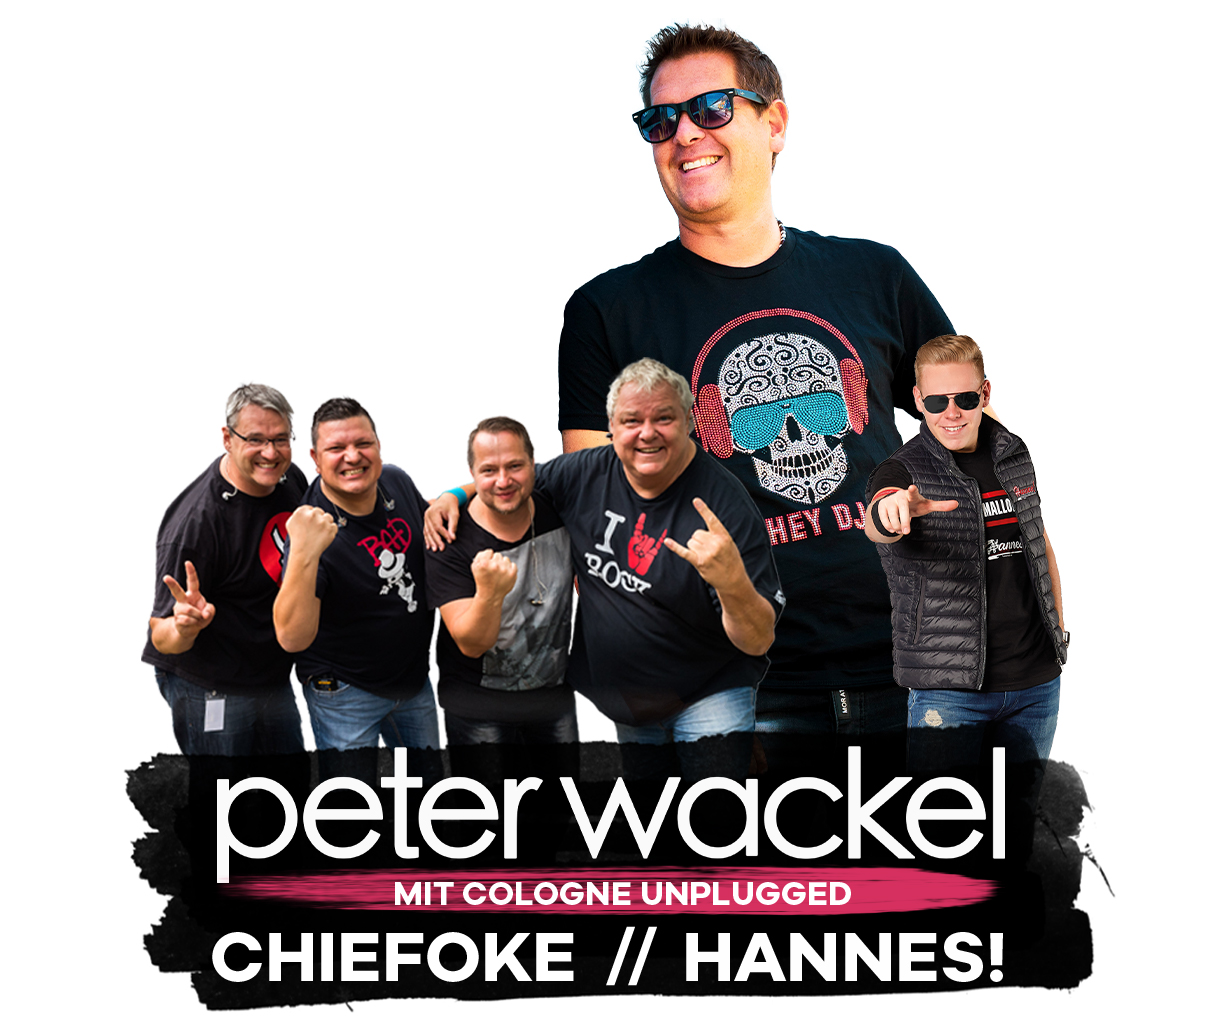 PETER WACKEL / CHIEFOKE / HANNES!